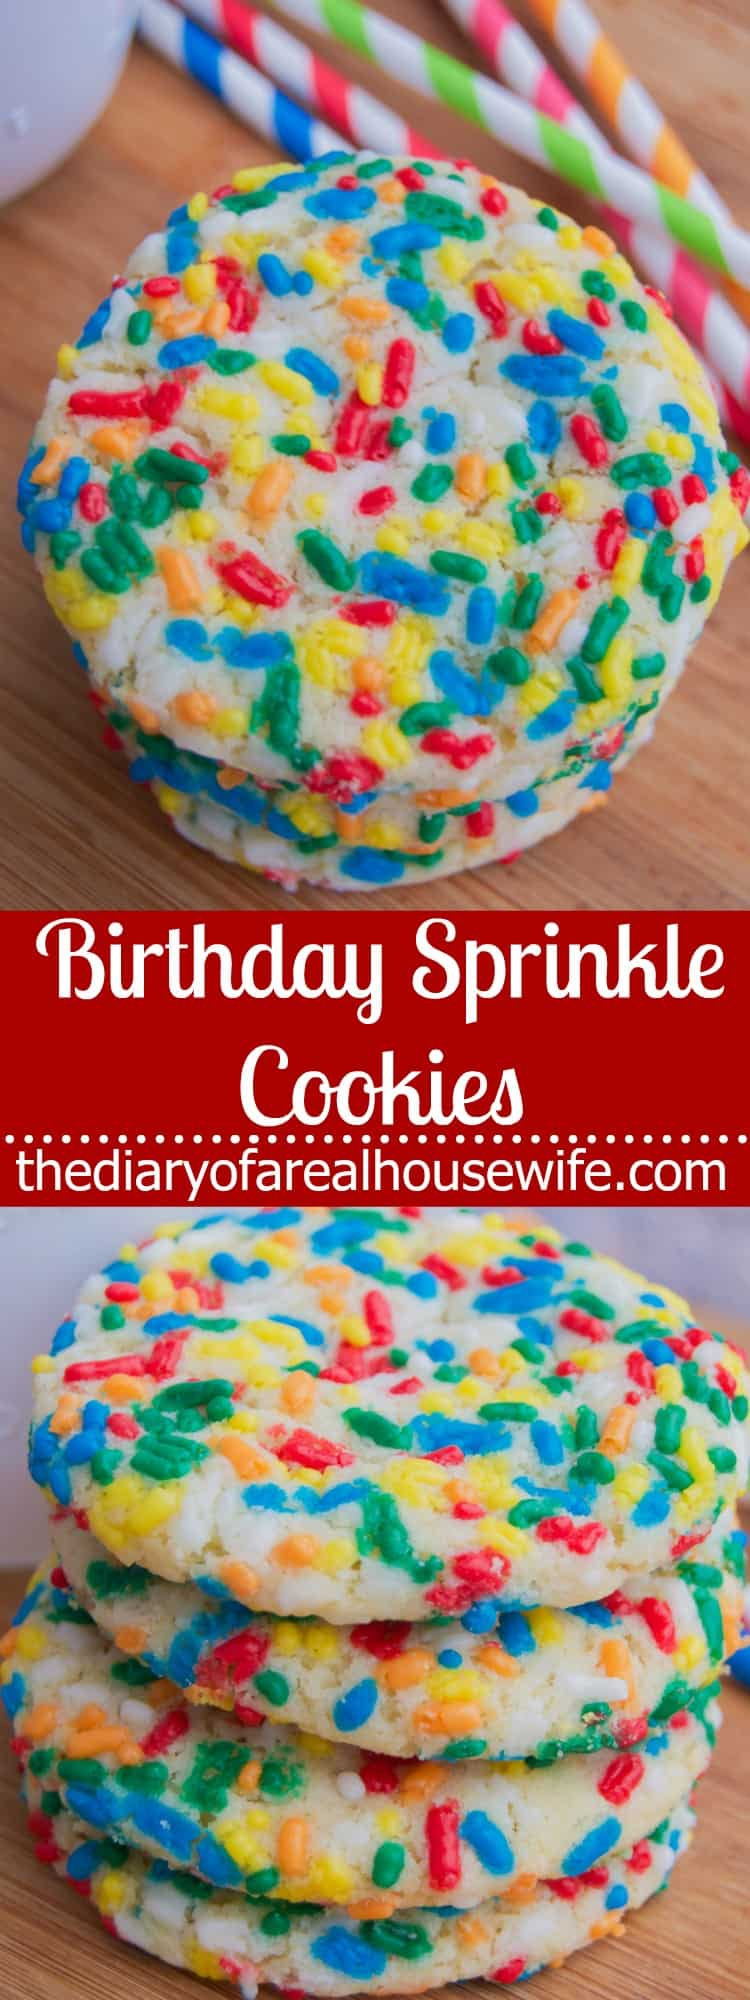 Birthday Sprinkle Cookies perfect for a birthday party